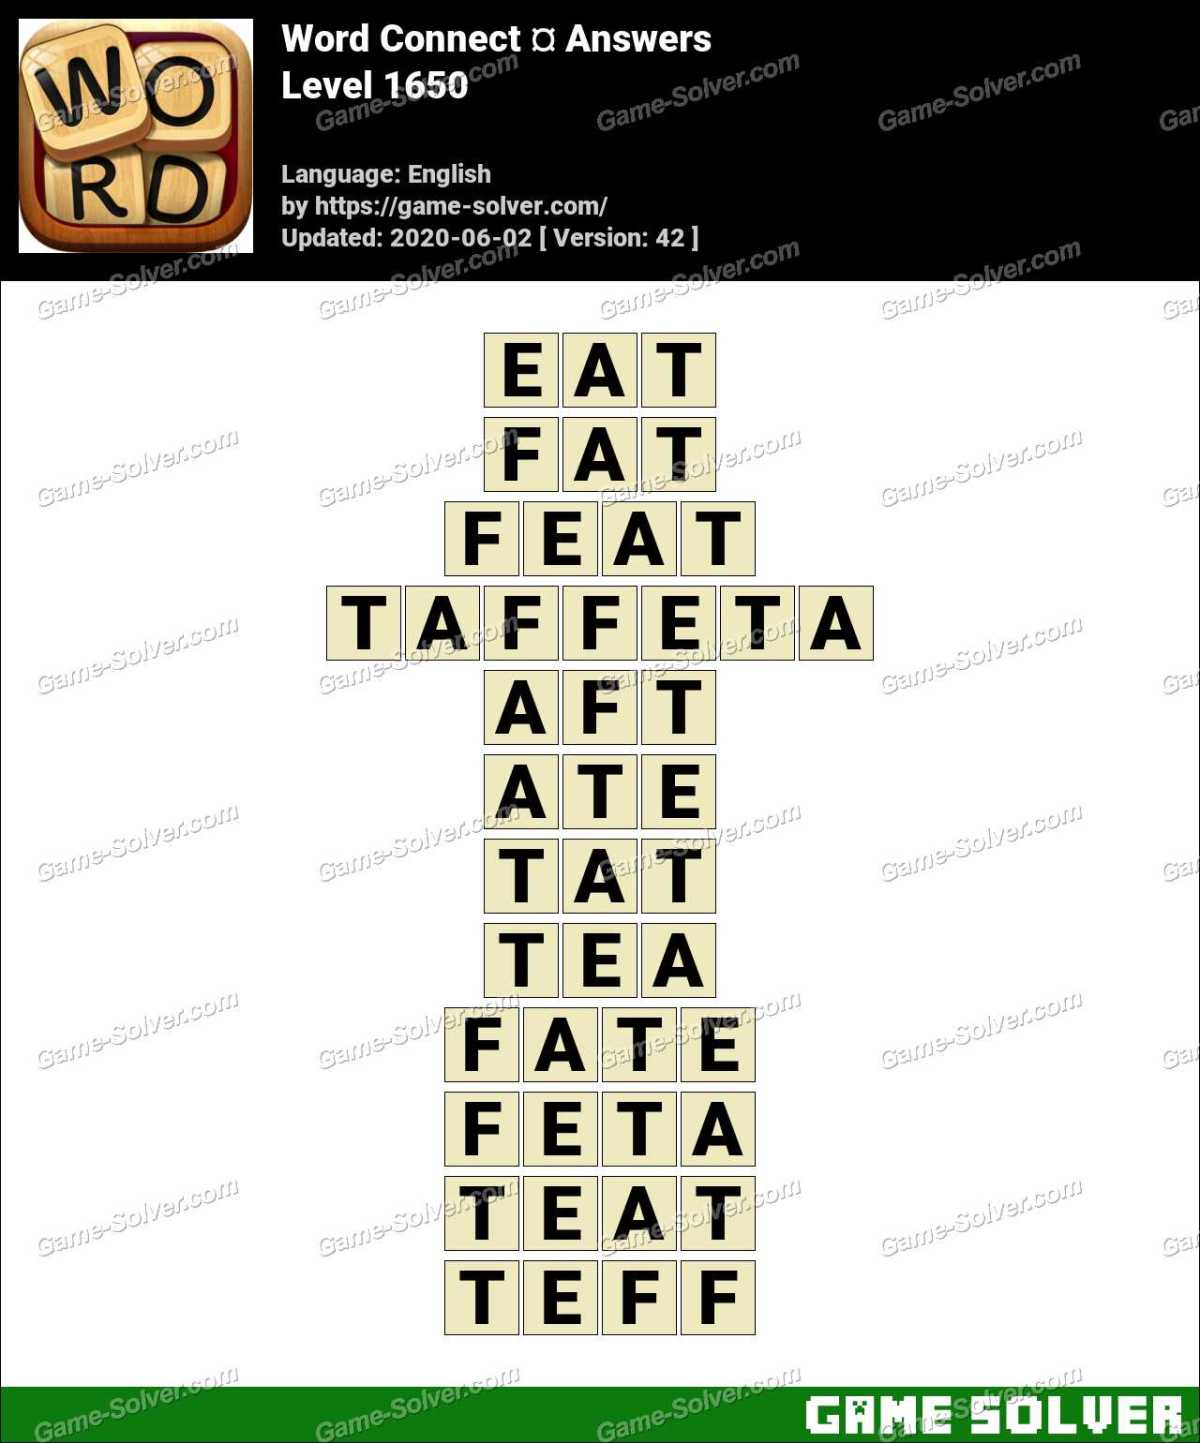 Word Connect Level 1650 Answers